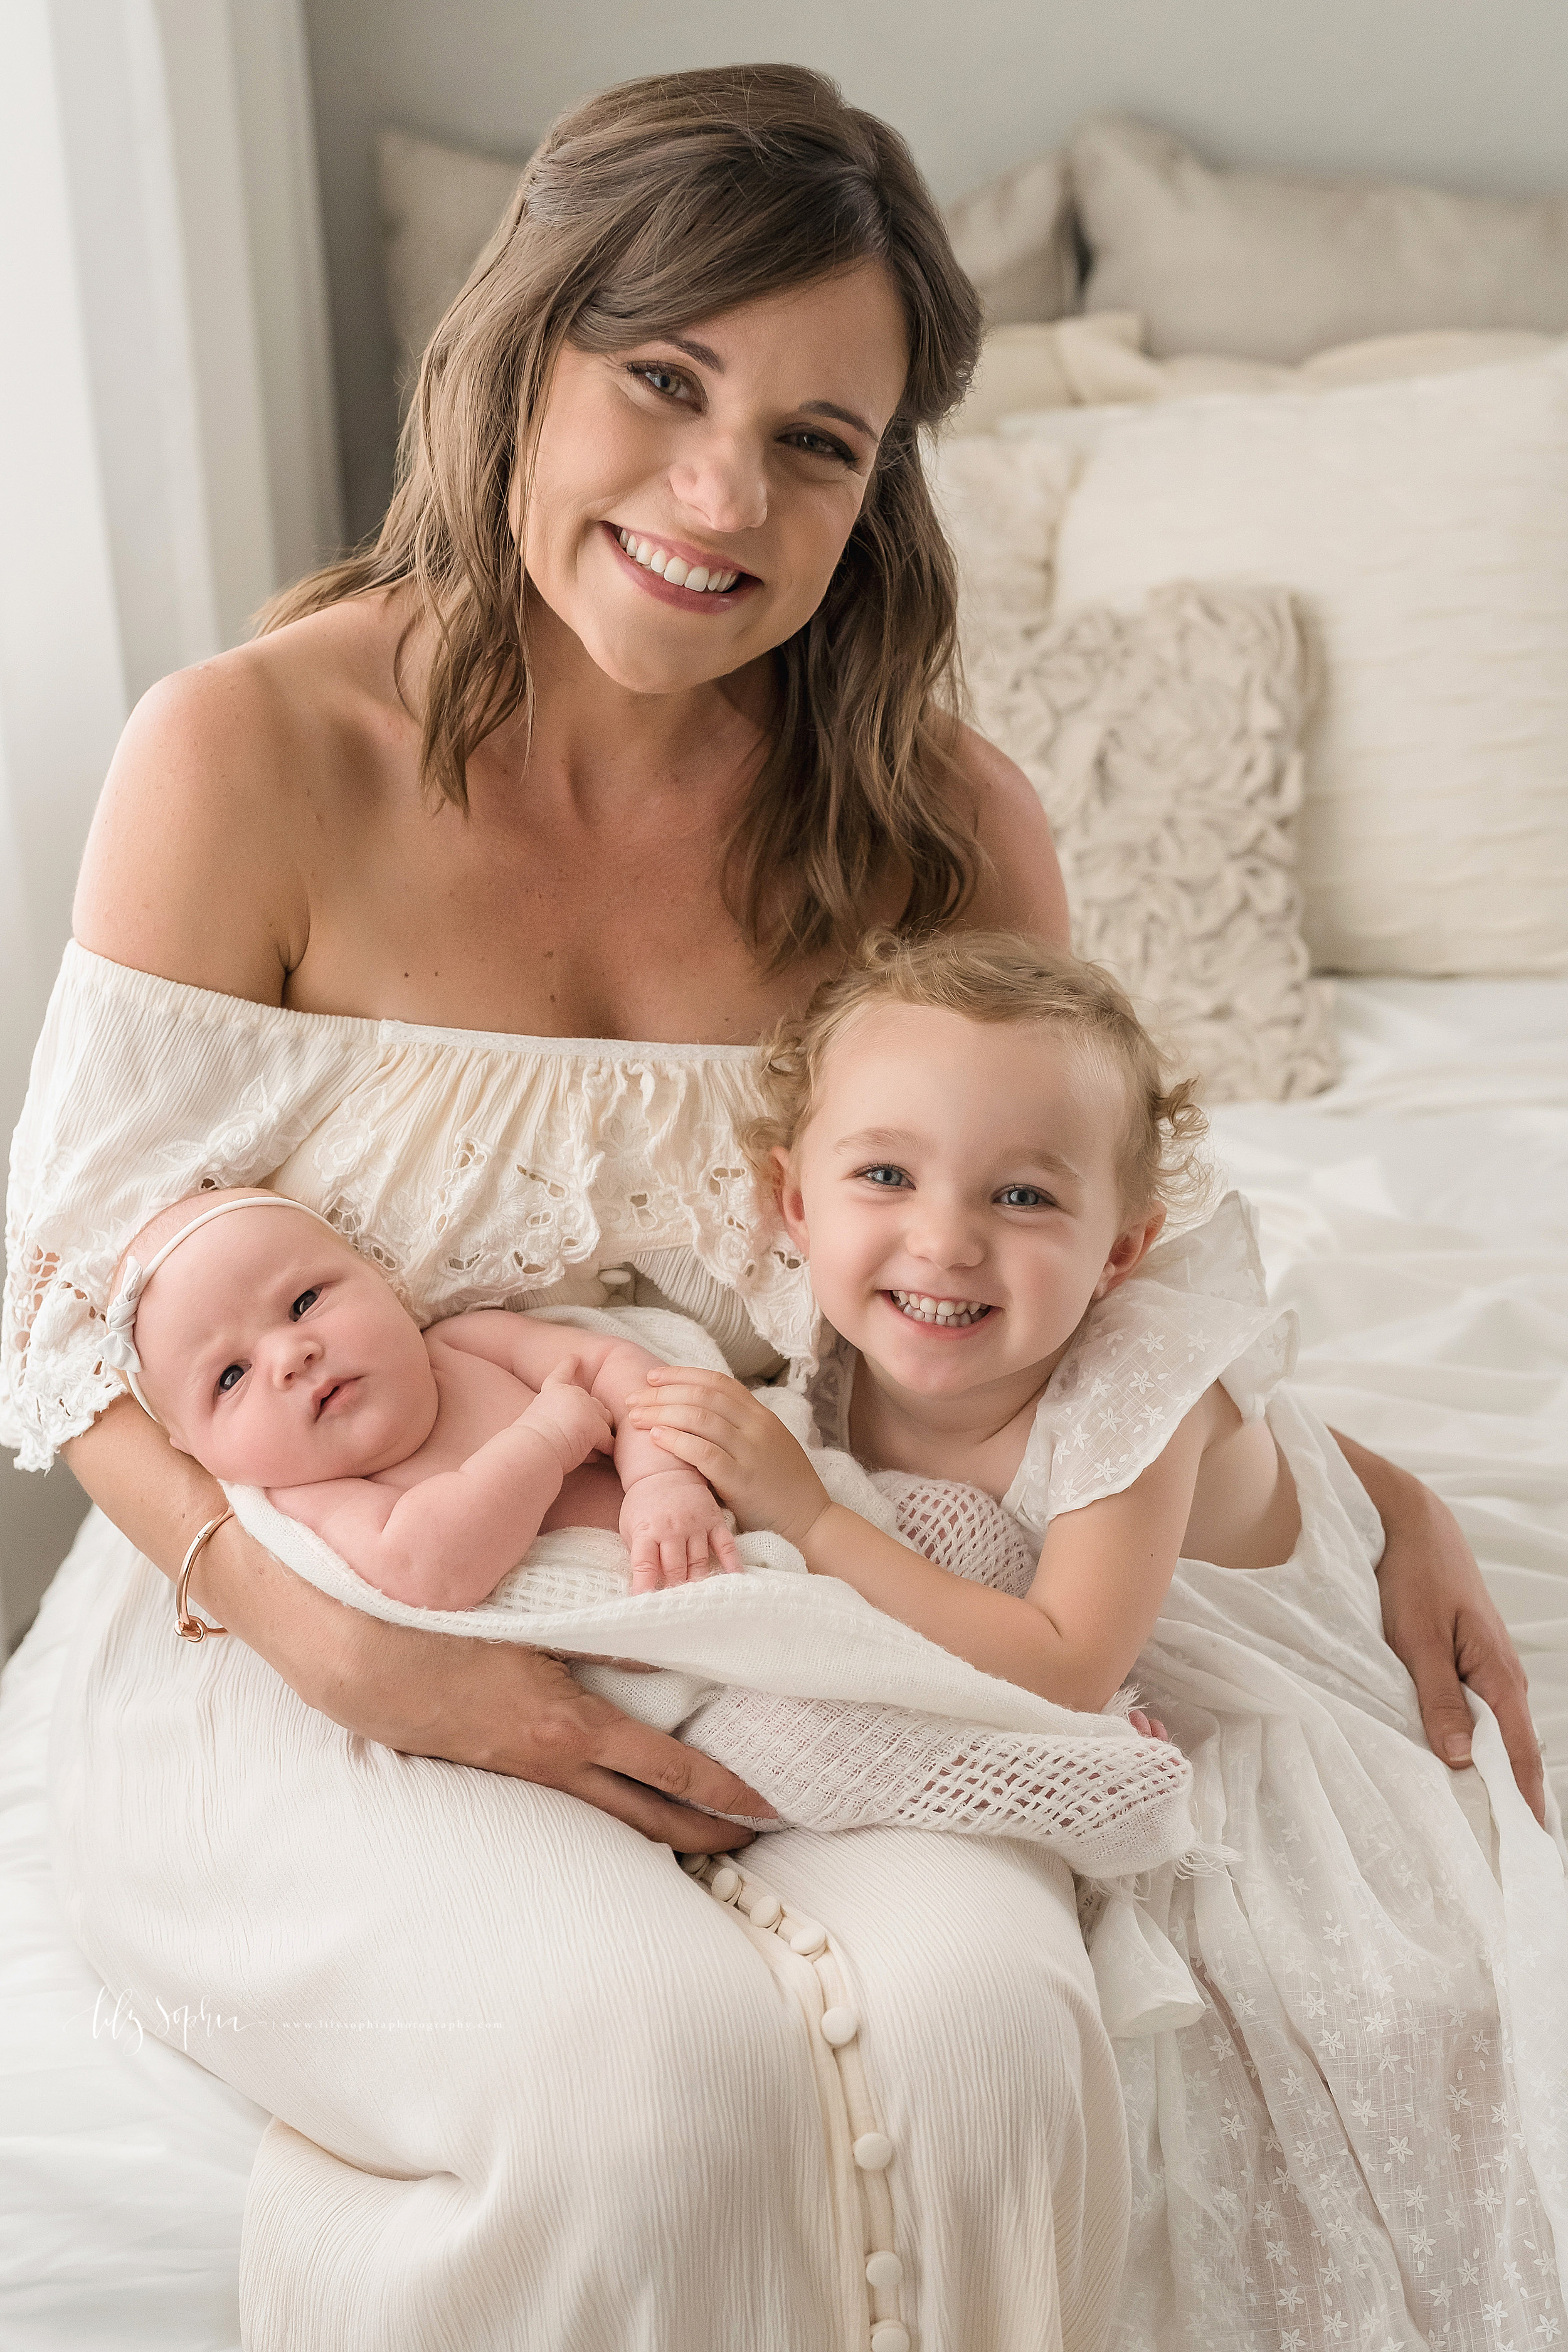 Family photo of an awake newborn, her smiling curly haired toddler sister and her proud and happy mom as mom sits on a bed and holds her newborn daughter on her lap and the toddler stands next to her taken in Atlanta, Georgia.